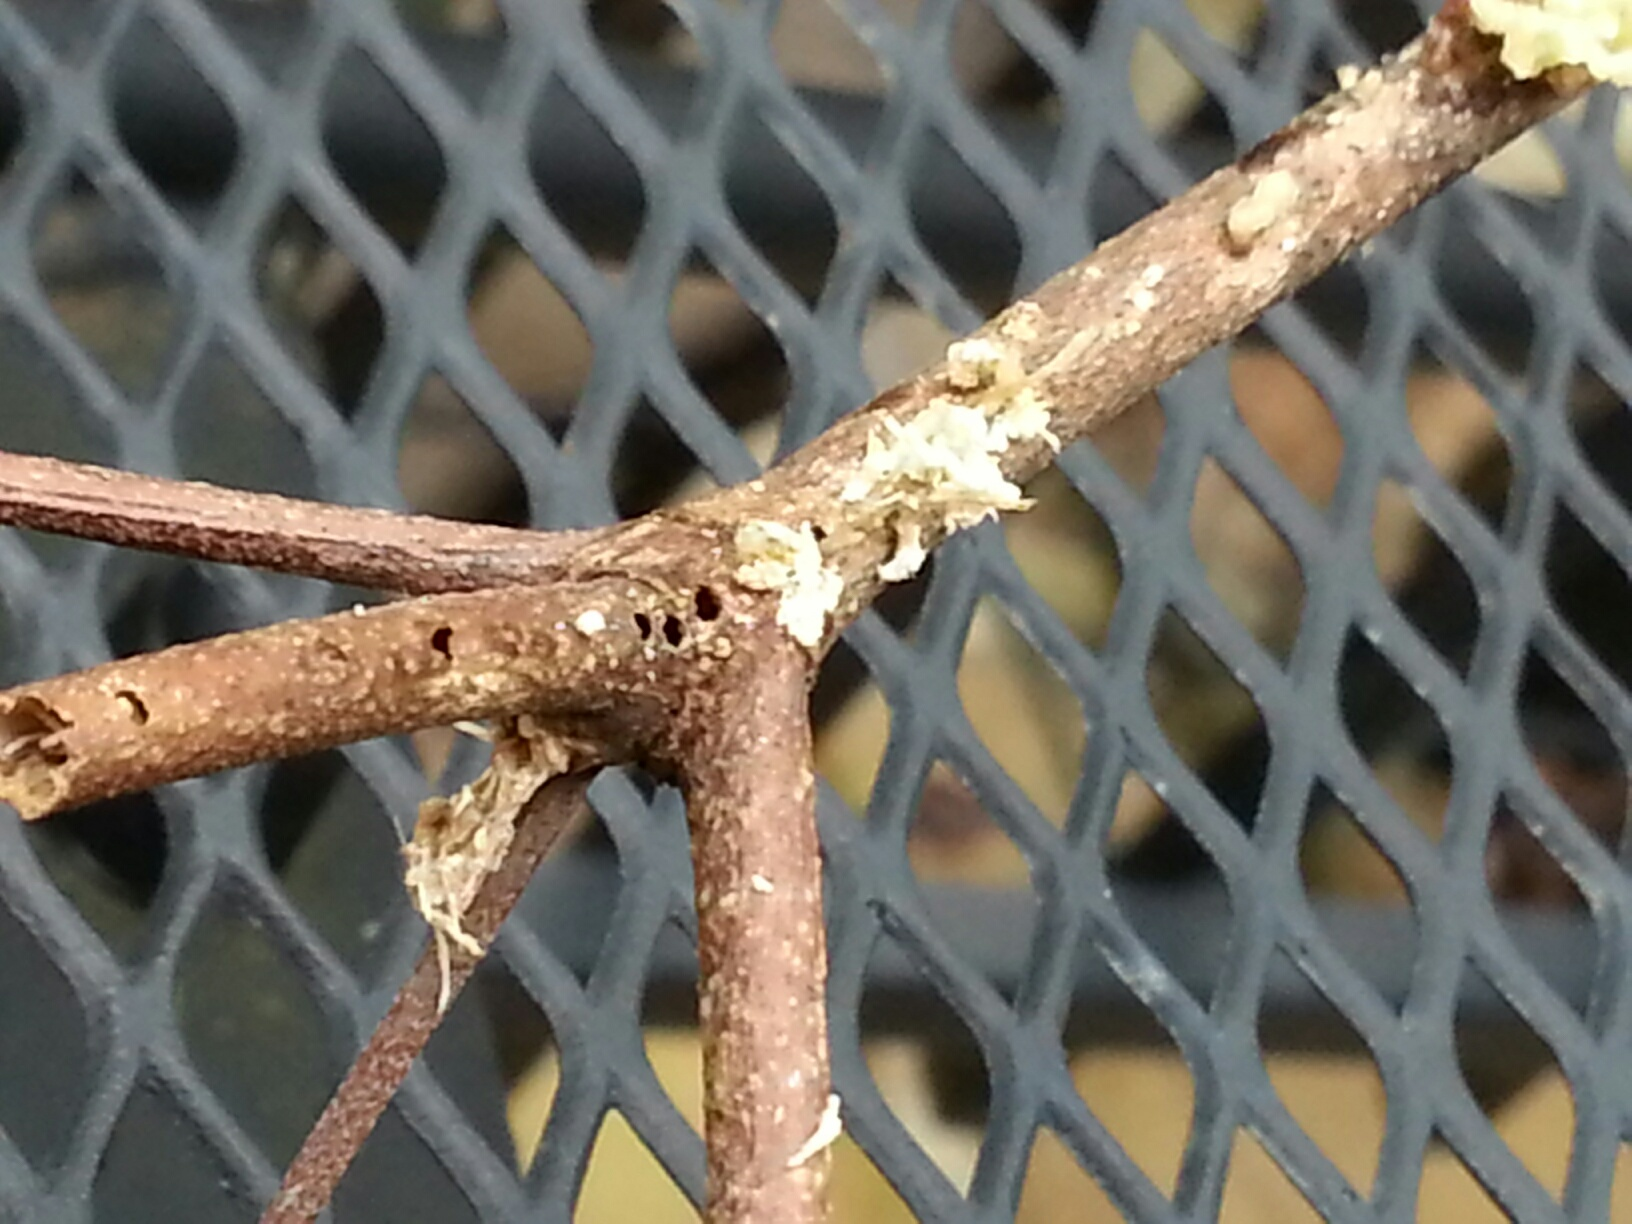 dogwood twig borer 8 querich03 at yahoo